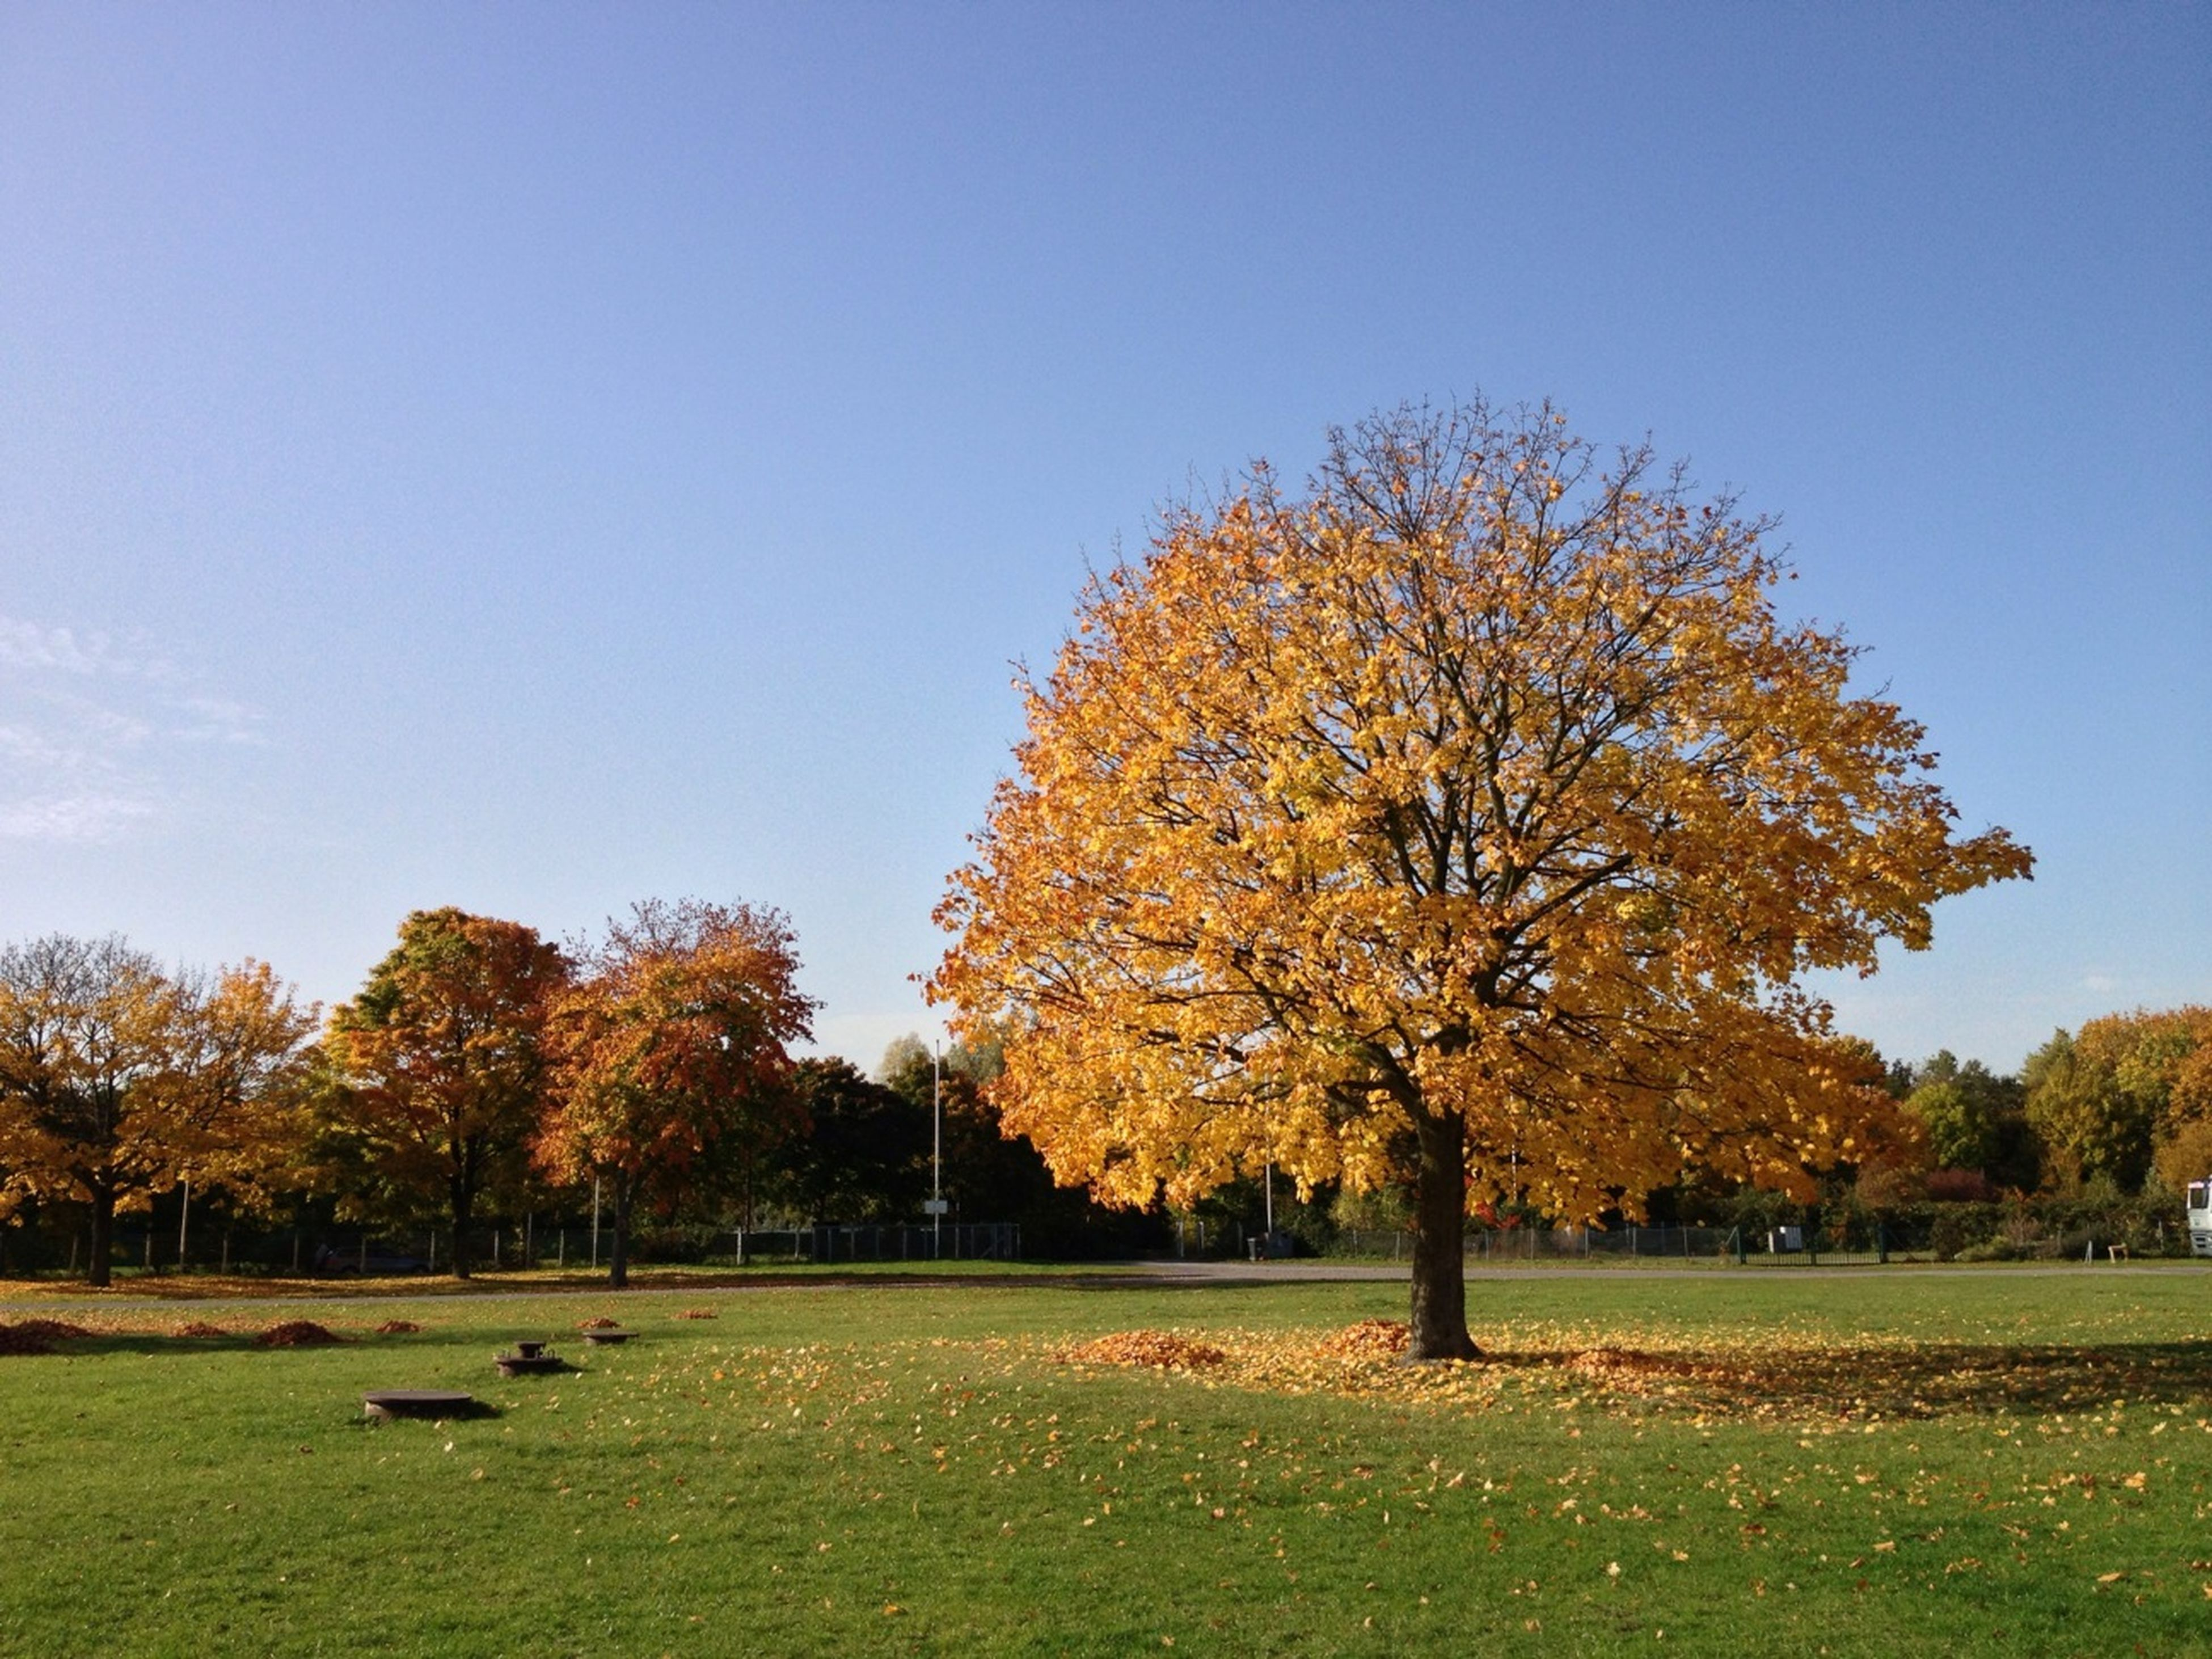 tree, autumn, clear sky, grass, change, tranquility, beauty in nature, field, season, tranquil scene, growth, nature, scenics, branch, landscape, park - man made space, grassy, blue, green color, day